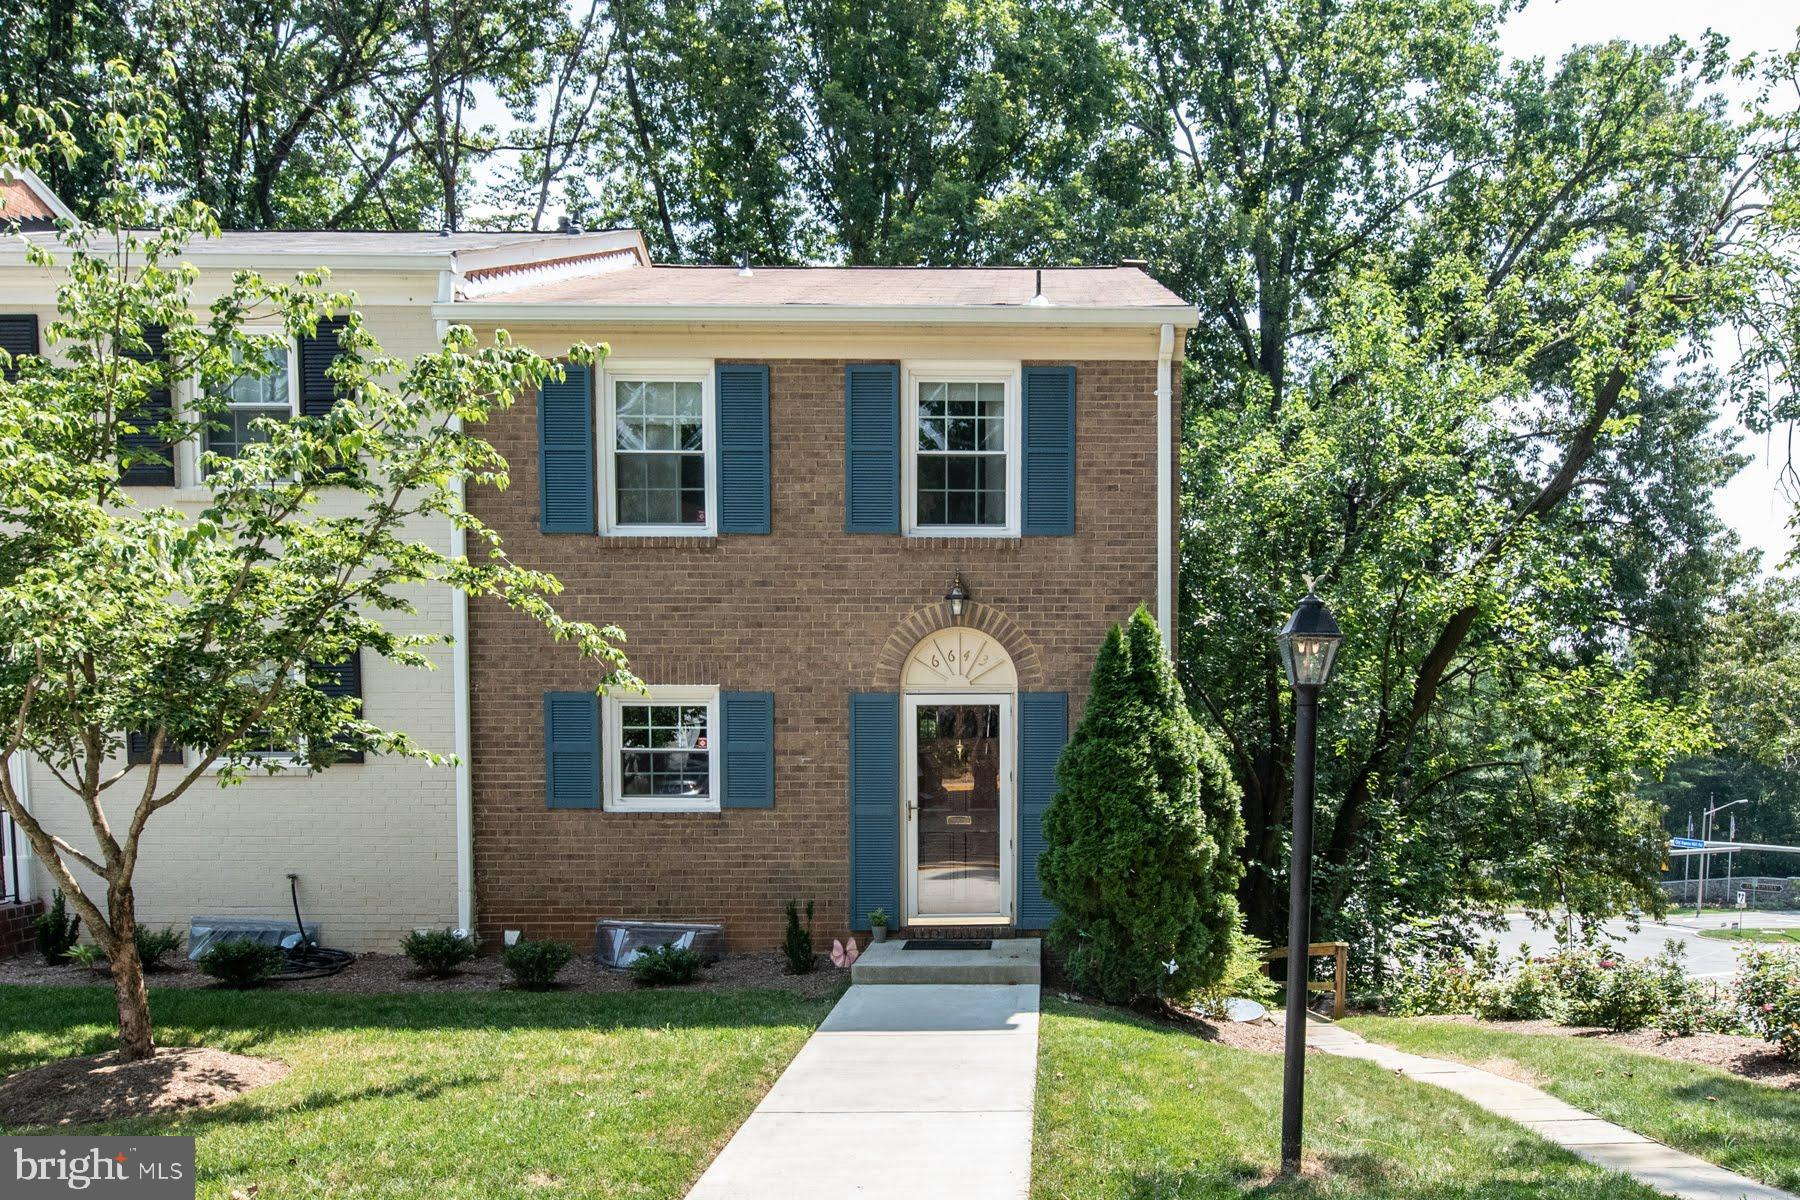 Welcome to your beautiful end unit townhome in the Cardinal Square community of Springfield, Virginia. This home features 3 bedroom and 3 full bathrooms. With hardwood floors in the living and dining rooms, updated kitchen with granite countertops, lovely backsplash and built in breakfast bar, this home is move-in ready!Enjoy barbecues in your spacious backyard oasis. Entertain family and friends on your wonderful patio. On those cold winter nights, gather around the fireplace with a blanket a cup of hot chocolate. The possibilities are endless at Burlington Place. The location is great close to 95/395 the beltway, Metros, Fairfax County Parkway. Plenty of shops and restaurants. All utilities included in the condo fee except electric.